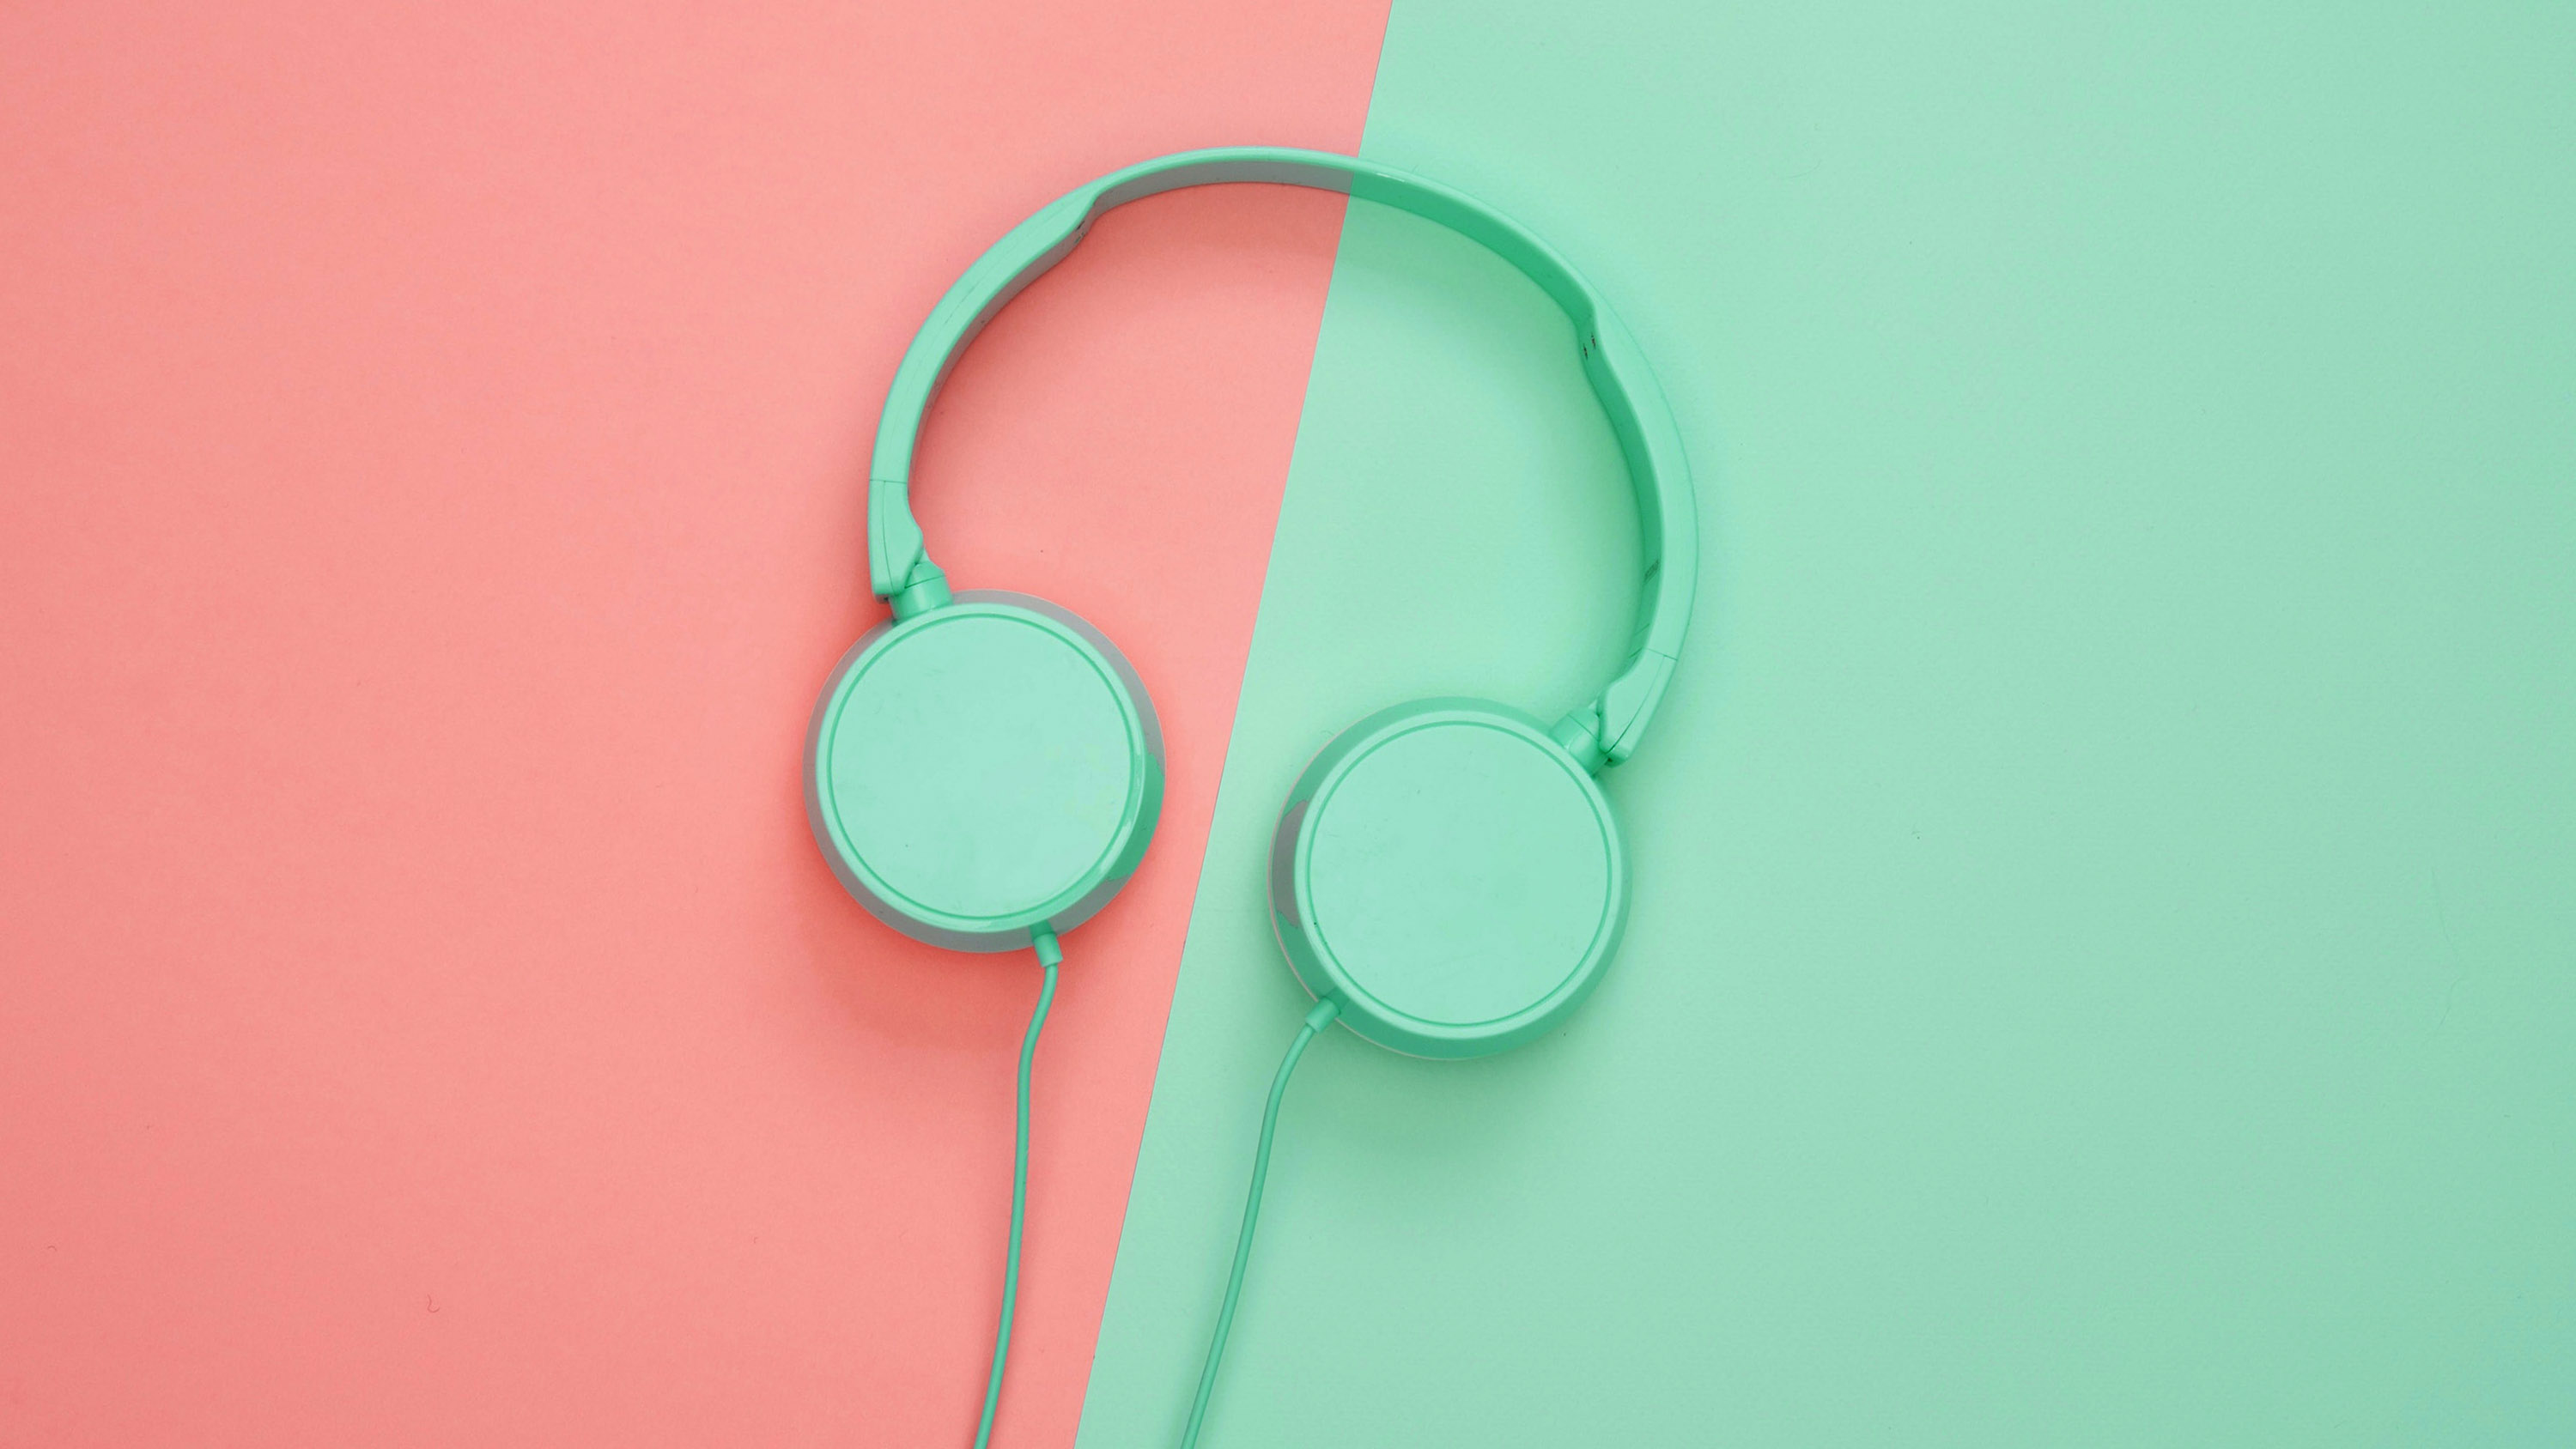 image of mint green headphones laying on split pink and mint background